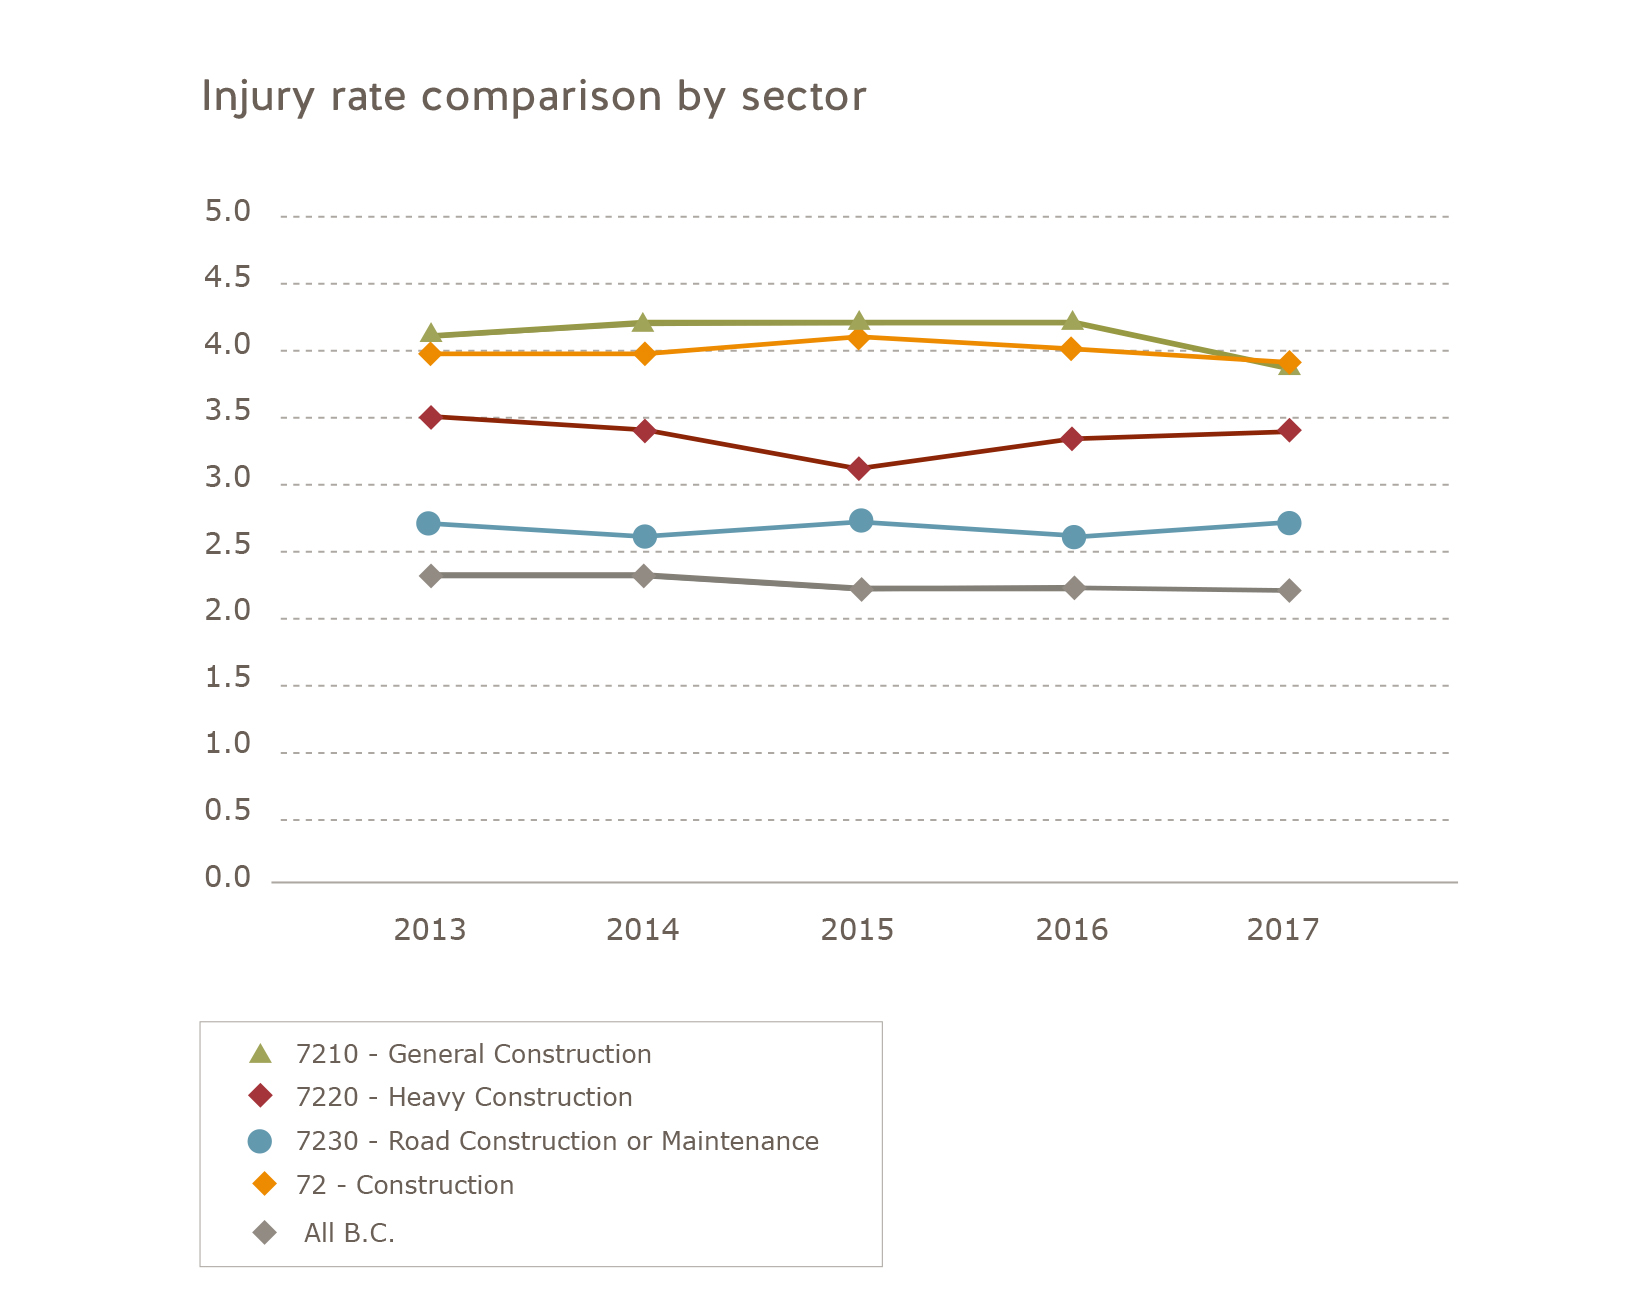 Injury rate comparison construction sector 2013 to 2017. 2013: General construction = 4.1, Heavy construction = 3.5, Road construction or maintenance = 2.7, Construction = 4.0, All of B.C. = 2.3. 2014: General construction = 4.2, Heavy construction = 3.4, Road construction or maintenance = 2.6, Construction = 4.0, All of B.C. = 2.3. 2015: General construction = 4.2, Heavy construction = 3.1; Road construction or maintenance = 2.7, Construction = 4.1, All of B.C. = 2.2. 2016: General construction = 4.2, Heavy construction = 3.3, Road construction or maintenance = 2.6, Construction = 4.0; All of B.C. = 2.2. 2017: General construction = 3.9, Heavy construction = 3.4; Road construction or maintenance = 2.7, Construction = 3.9, All of B.C. = 2.2.